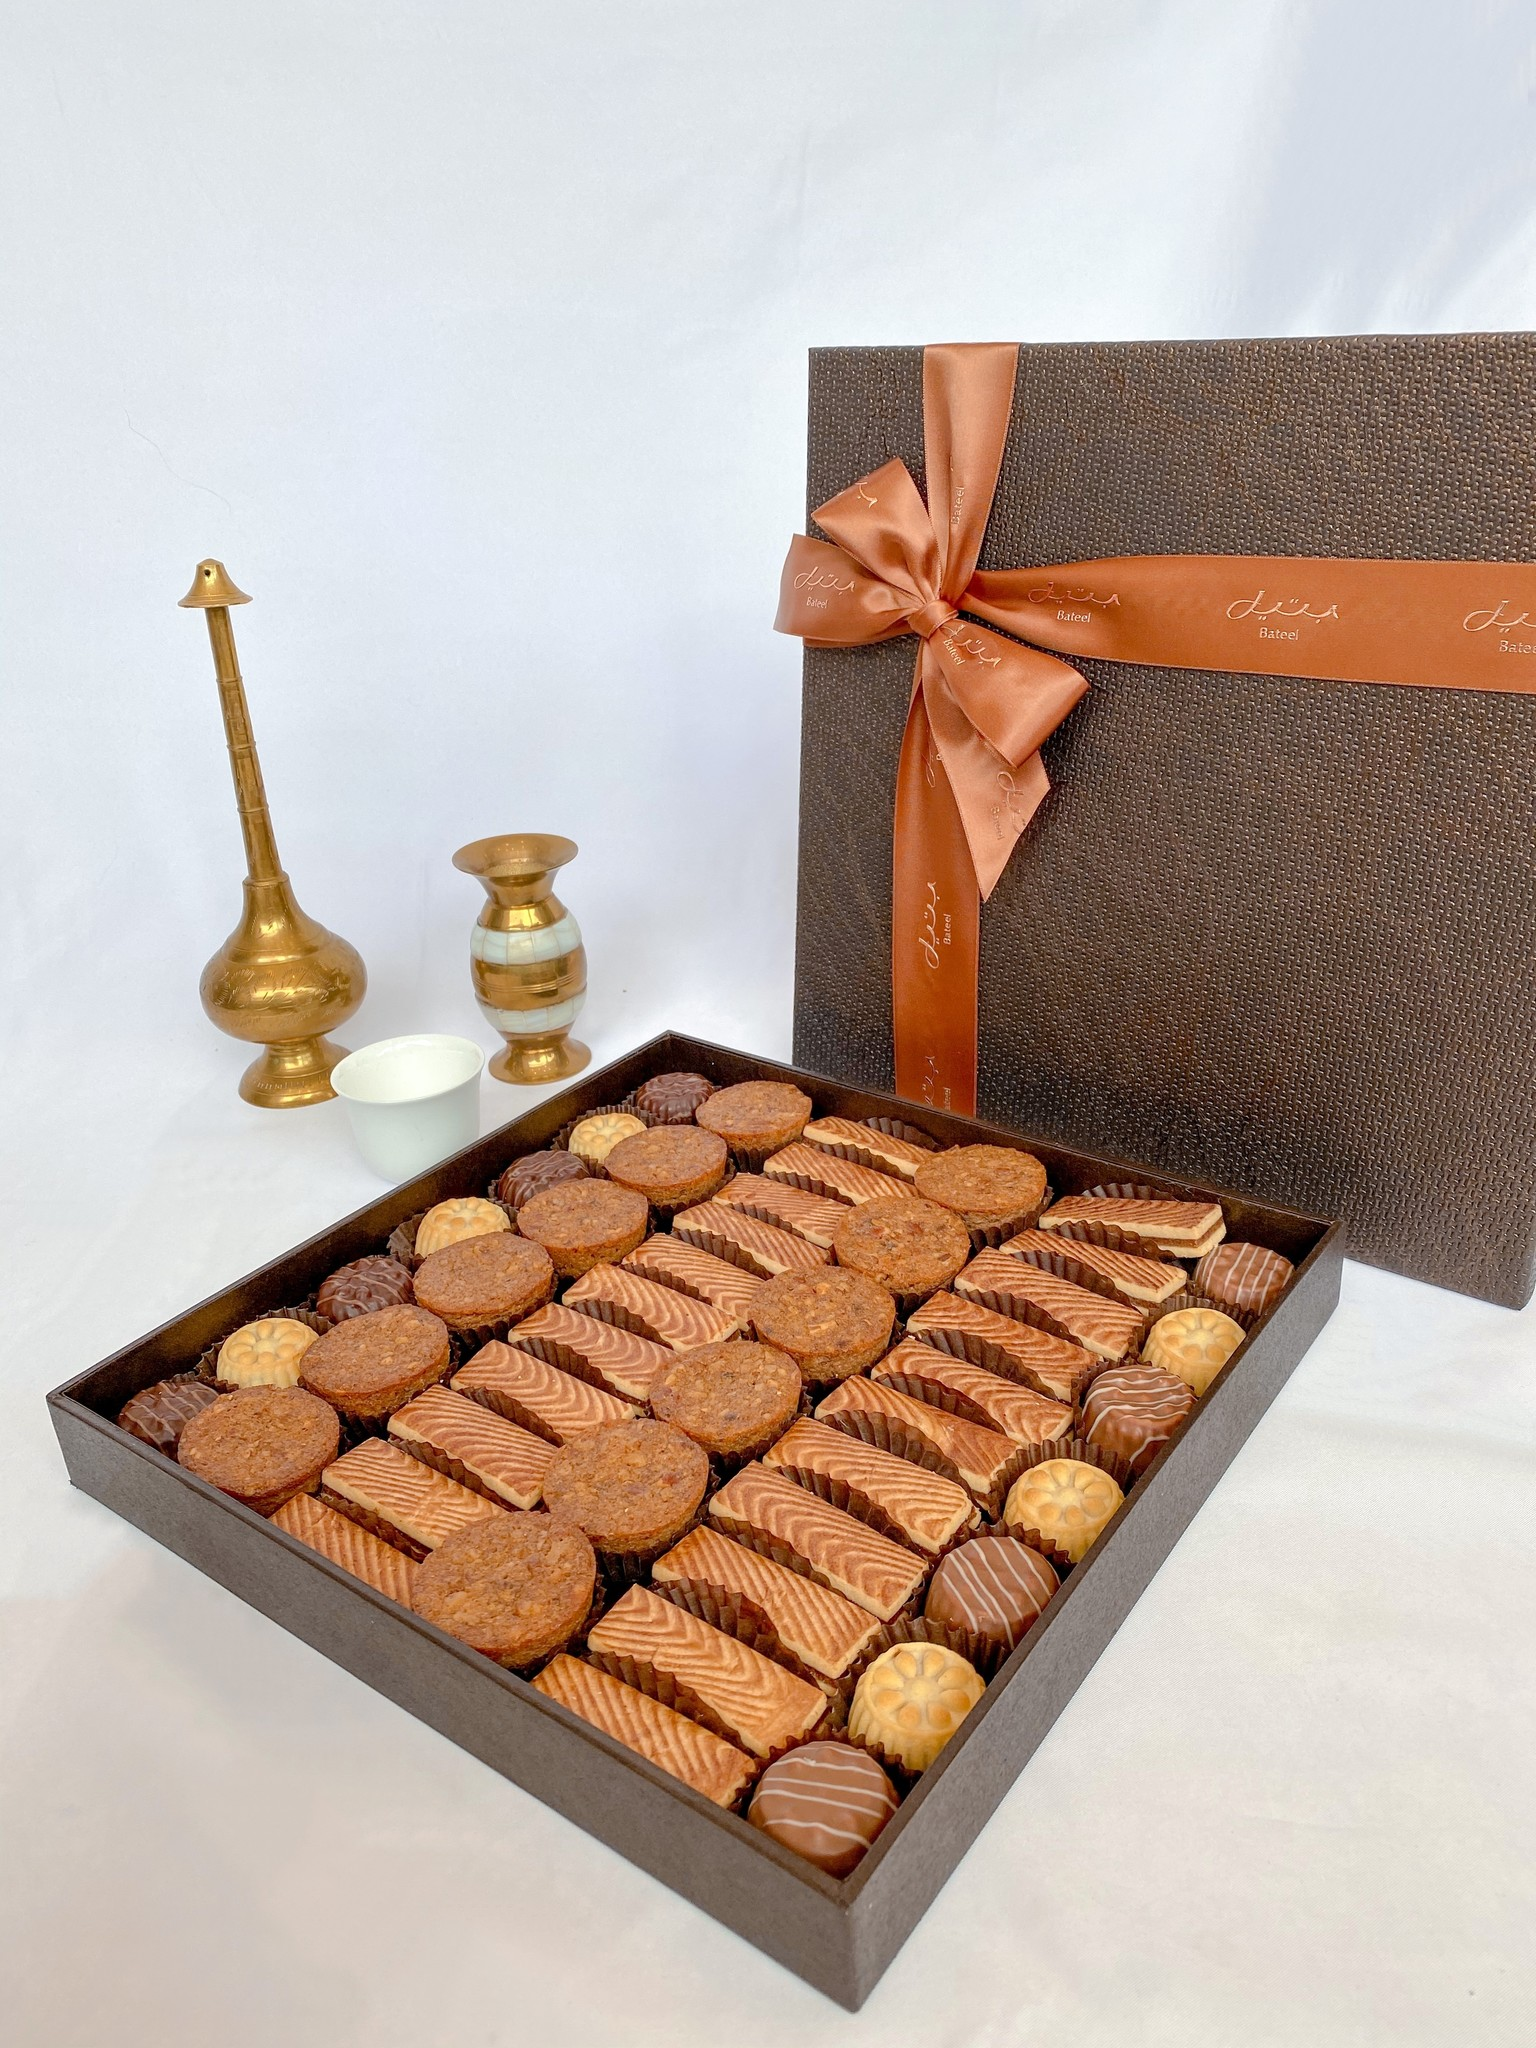 Bateel USA Alina Square L Gourmet Biscuits Assortment